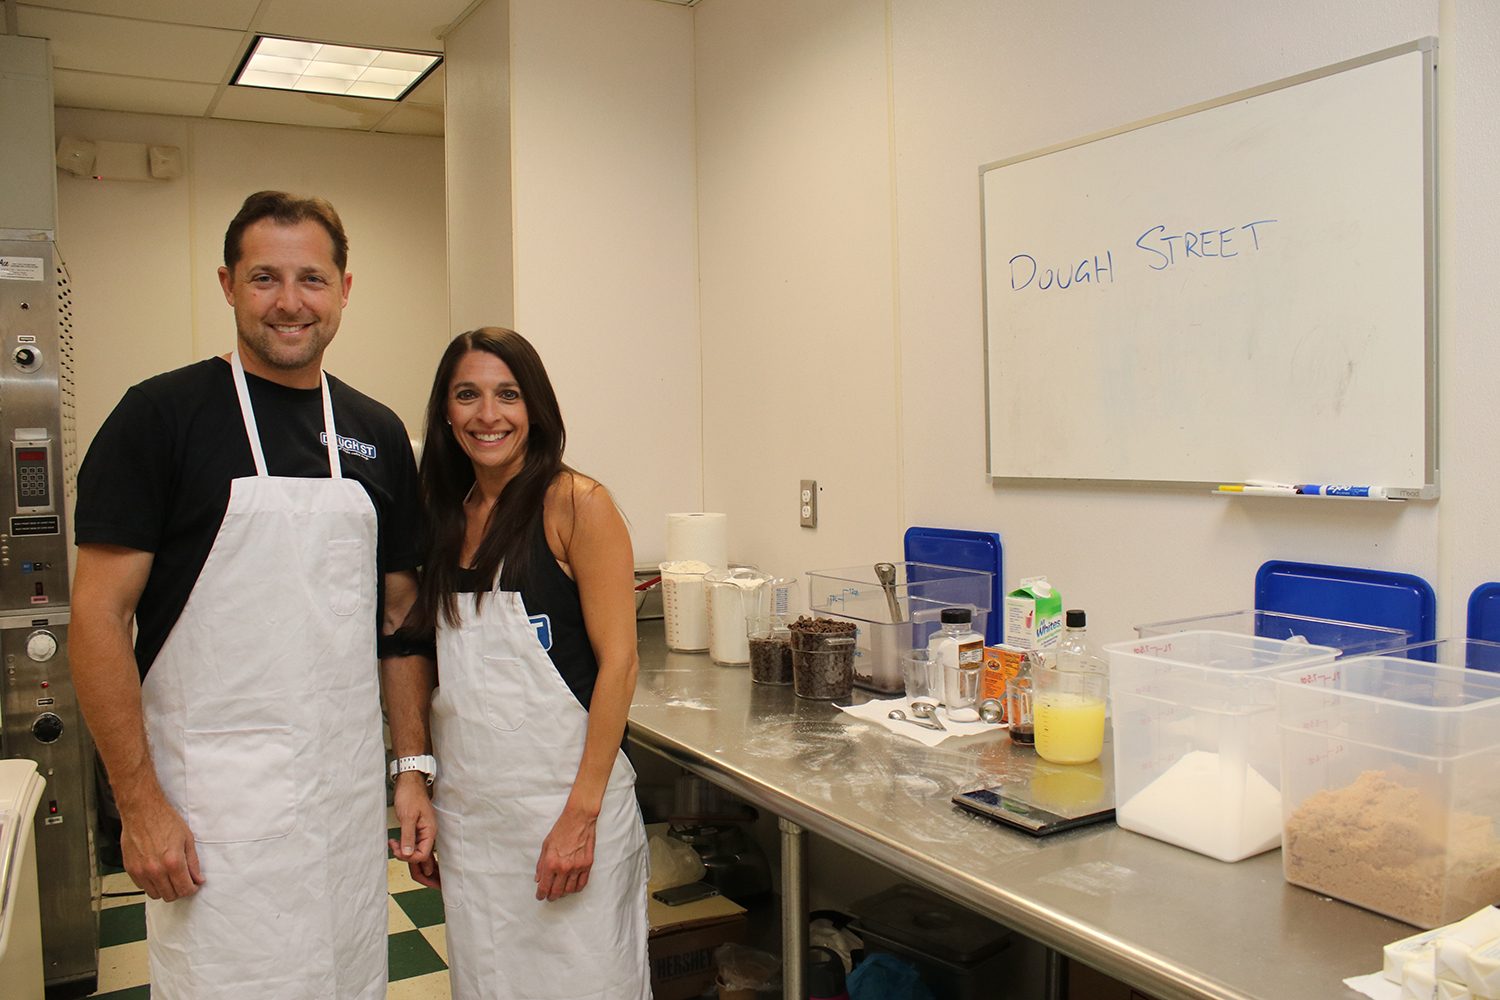 Dough Street co-owners Andy Simms and Katie Pollock make their cookie dough at the Cleveland Culinary Launch and Kitchen in Cleveland.